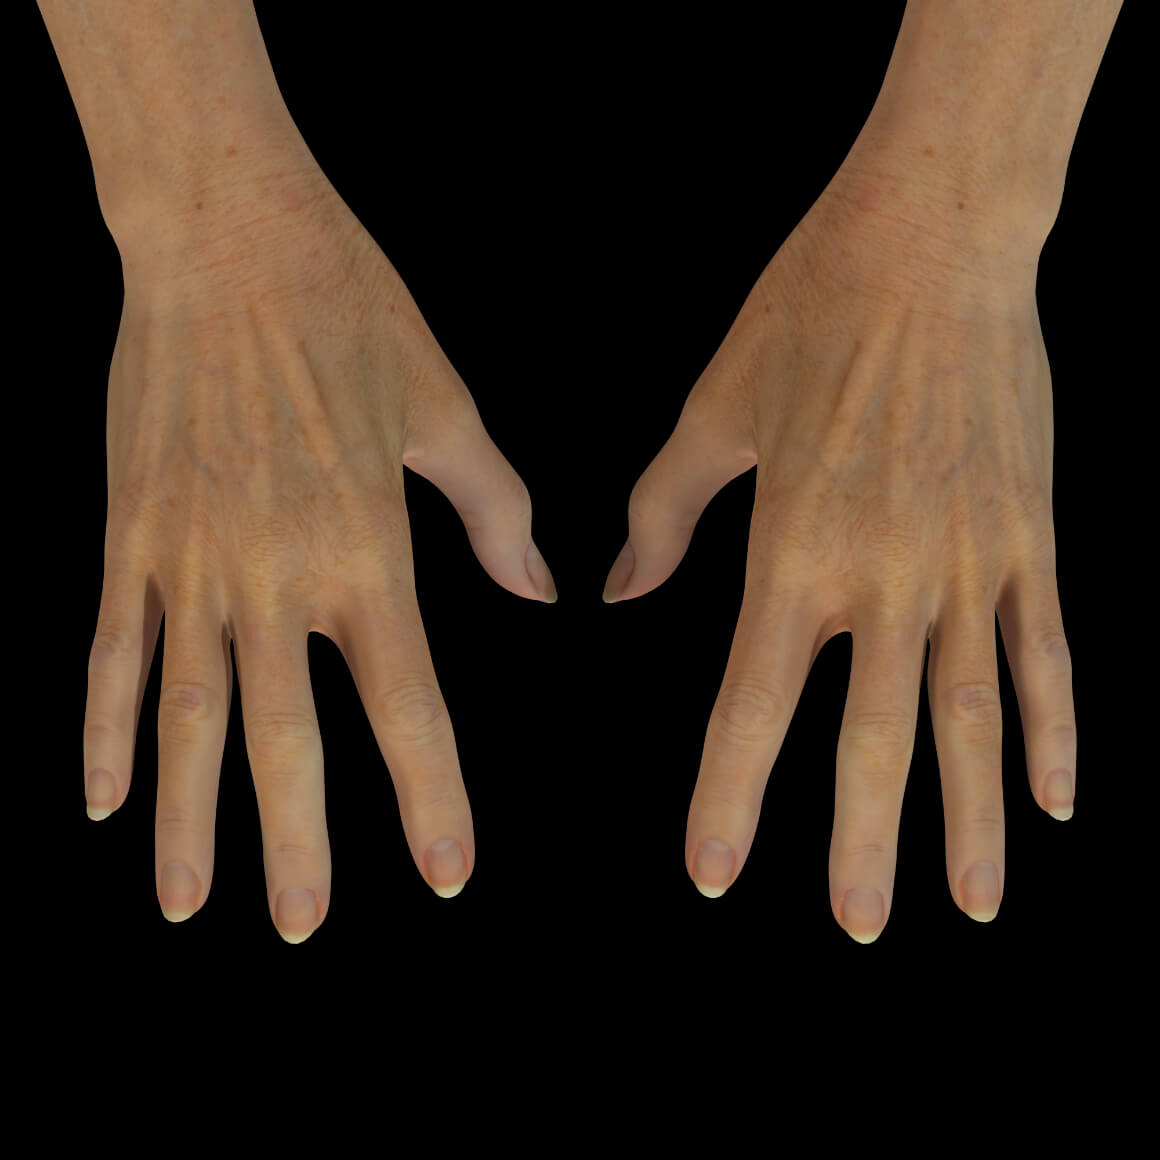 Hands of a Clinique Chloé female patient after dermal filler injections to rejuvenate their appearance